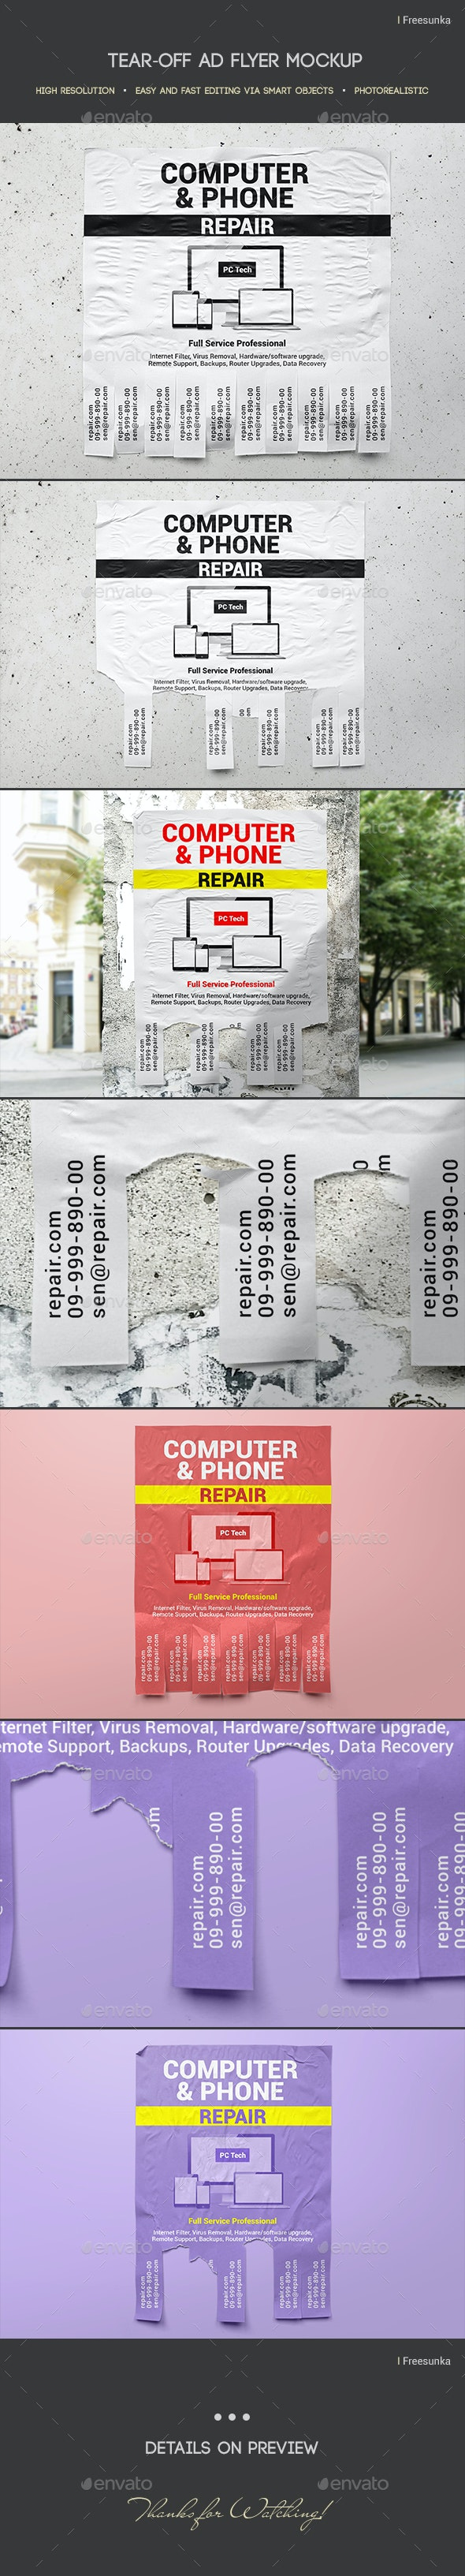 Tear-off Ad Flyer Mockup - Miscellaneous Print